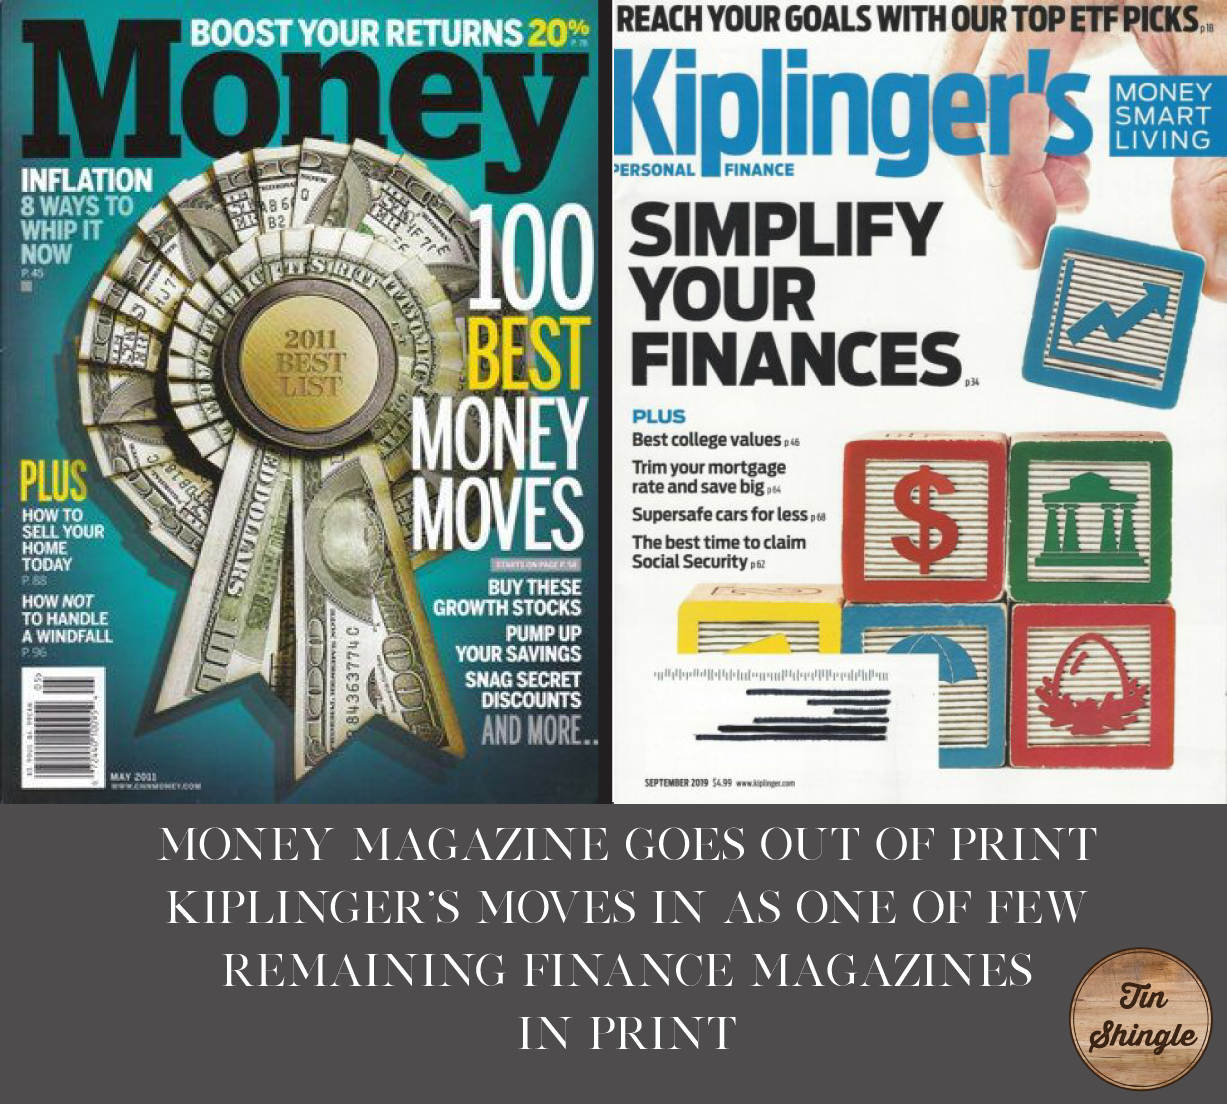 money-magazine-kiplingers-personal-finance-MAIN.png